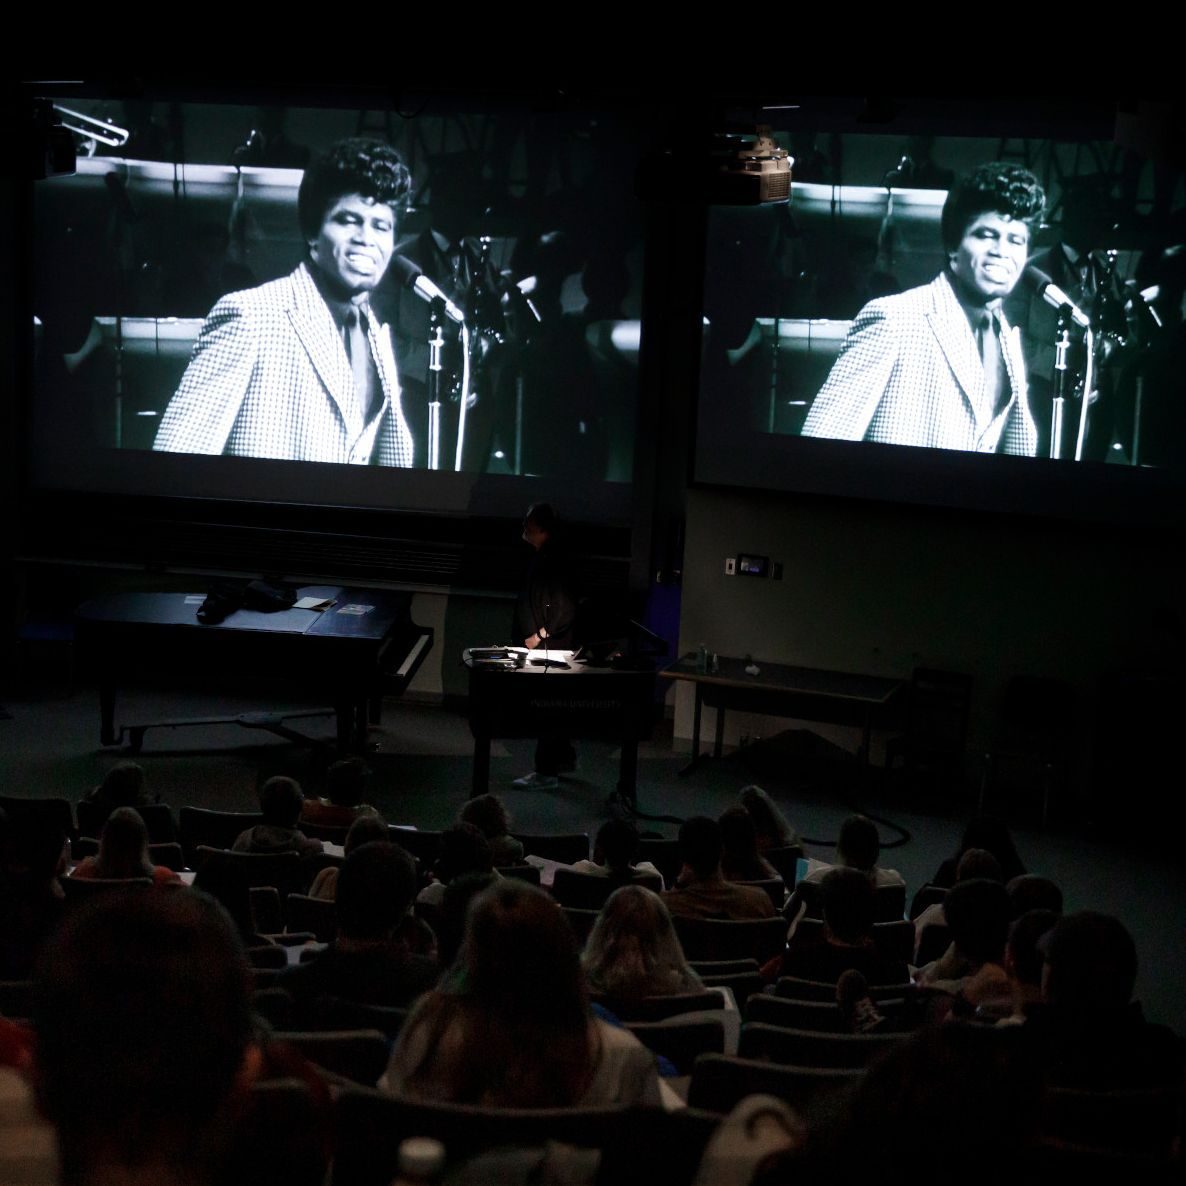 Students watch an archival video clip on the screen of a darkened lecture hall